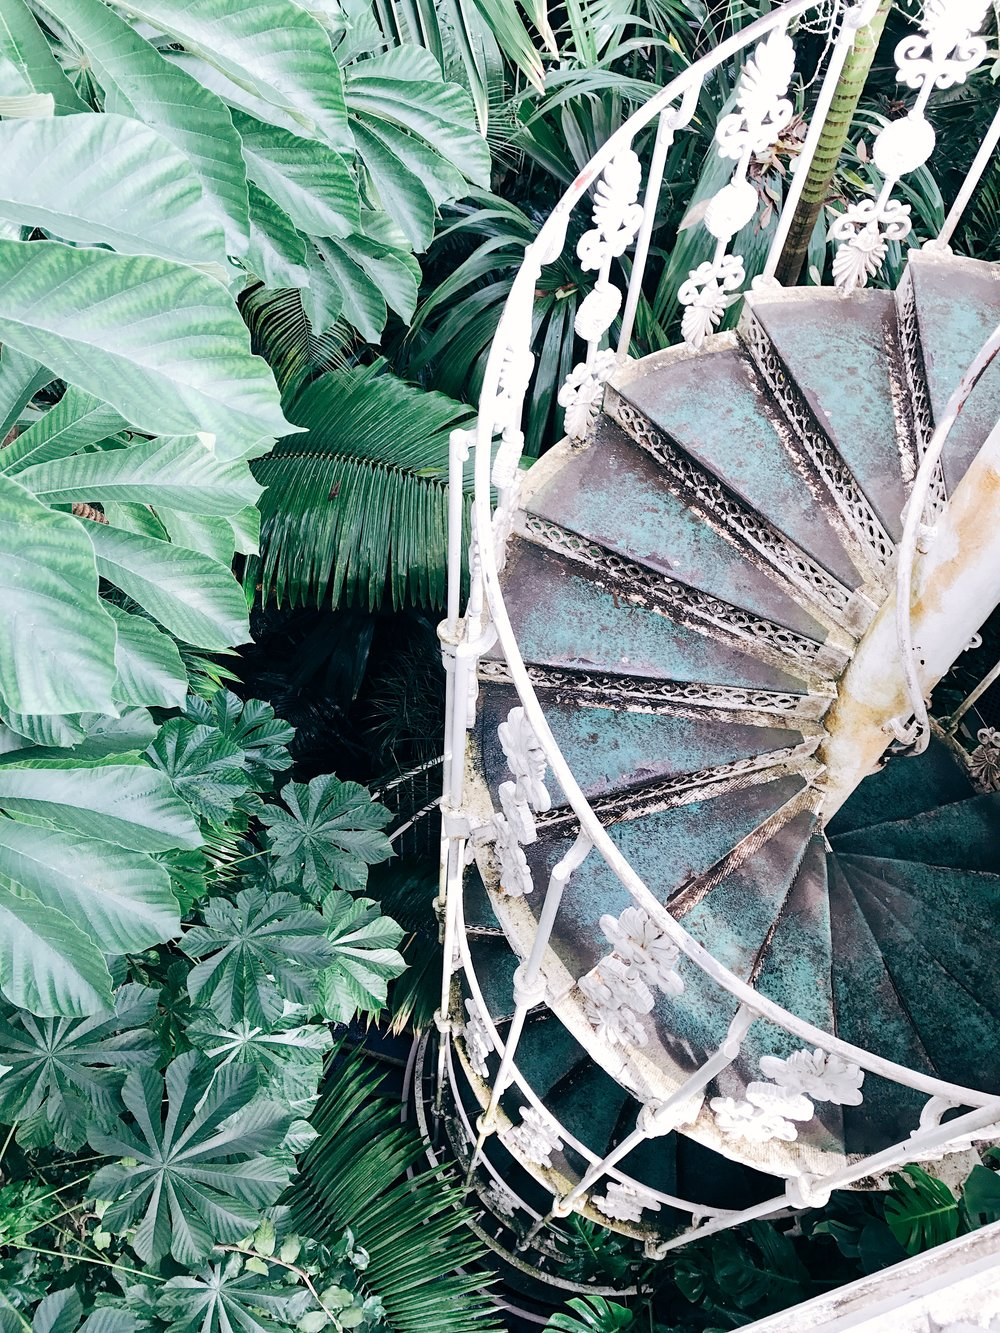 Image: Reasons to Visit London - Many Images to Inspire You to Visit London - Kew Gardens